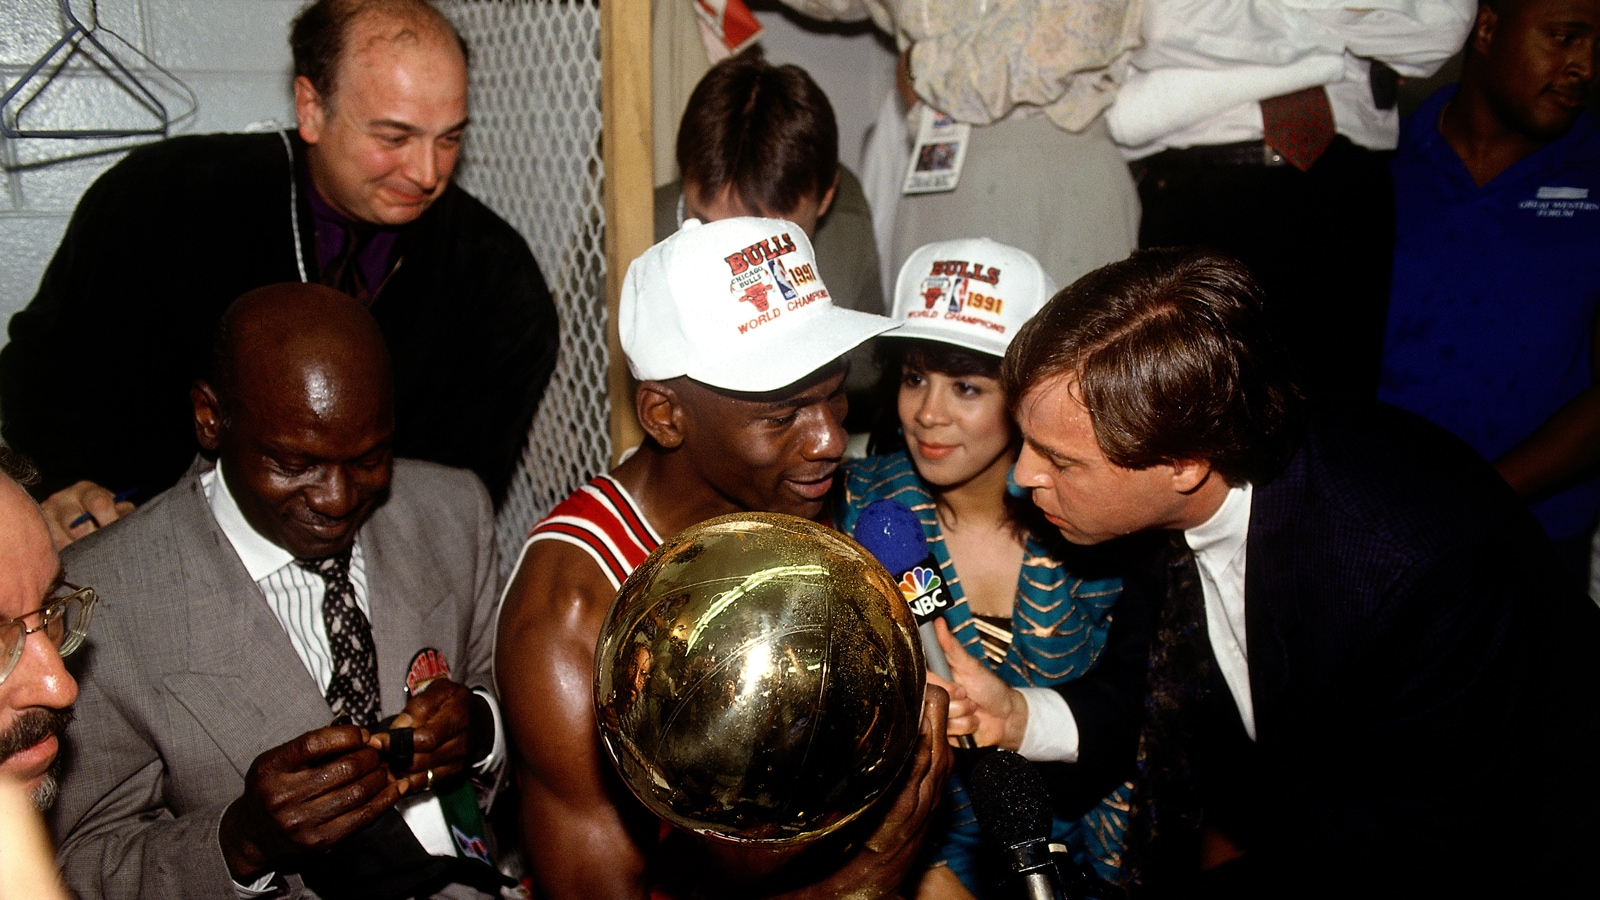 Michael Jordan is interviewed by Bob Costas after the Bulls won their first NBA title in 1991